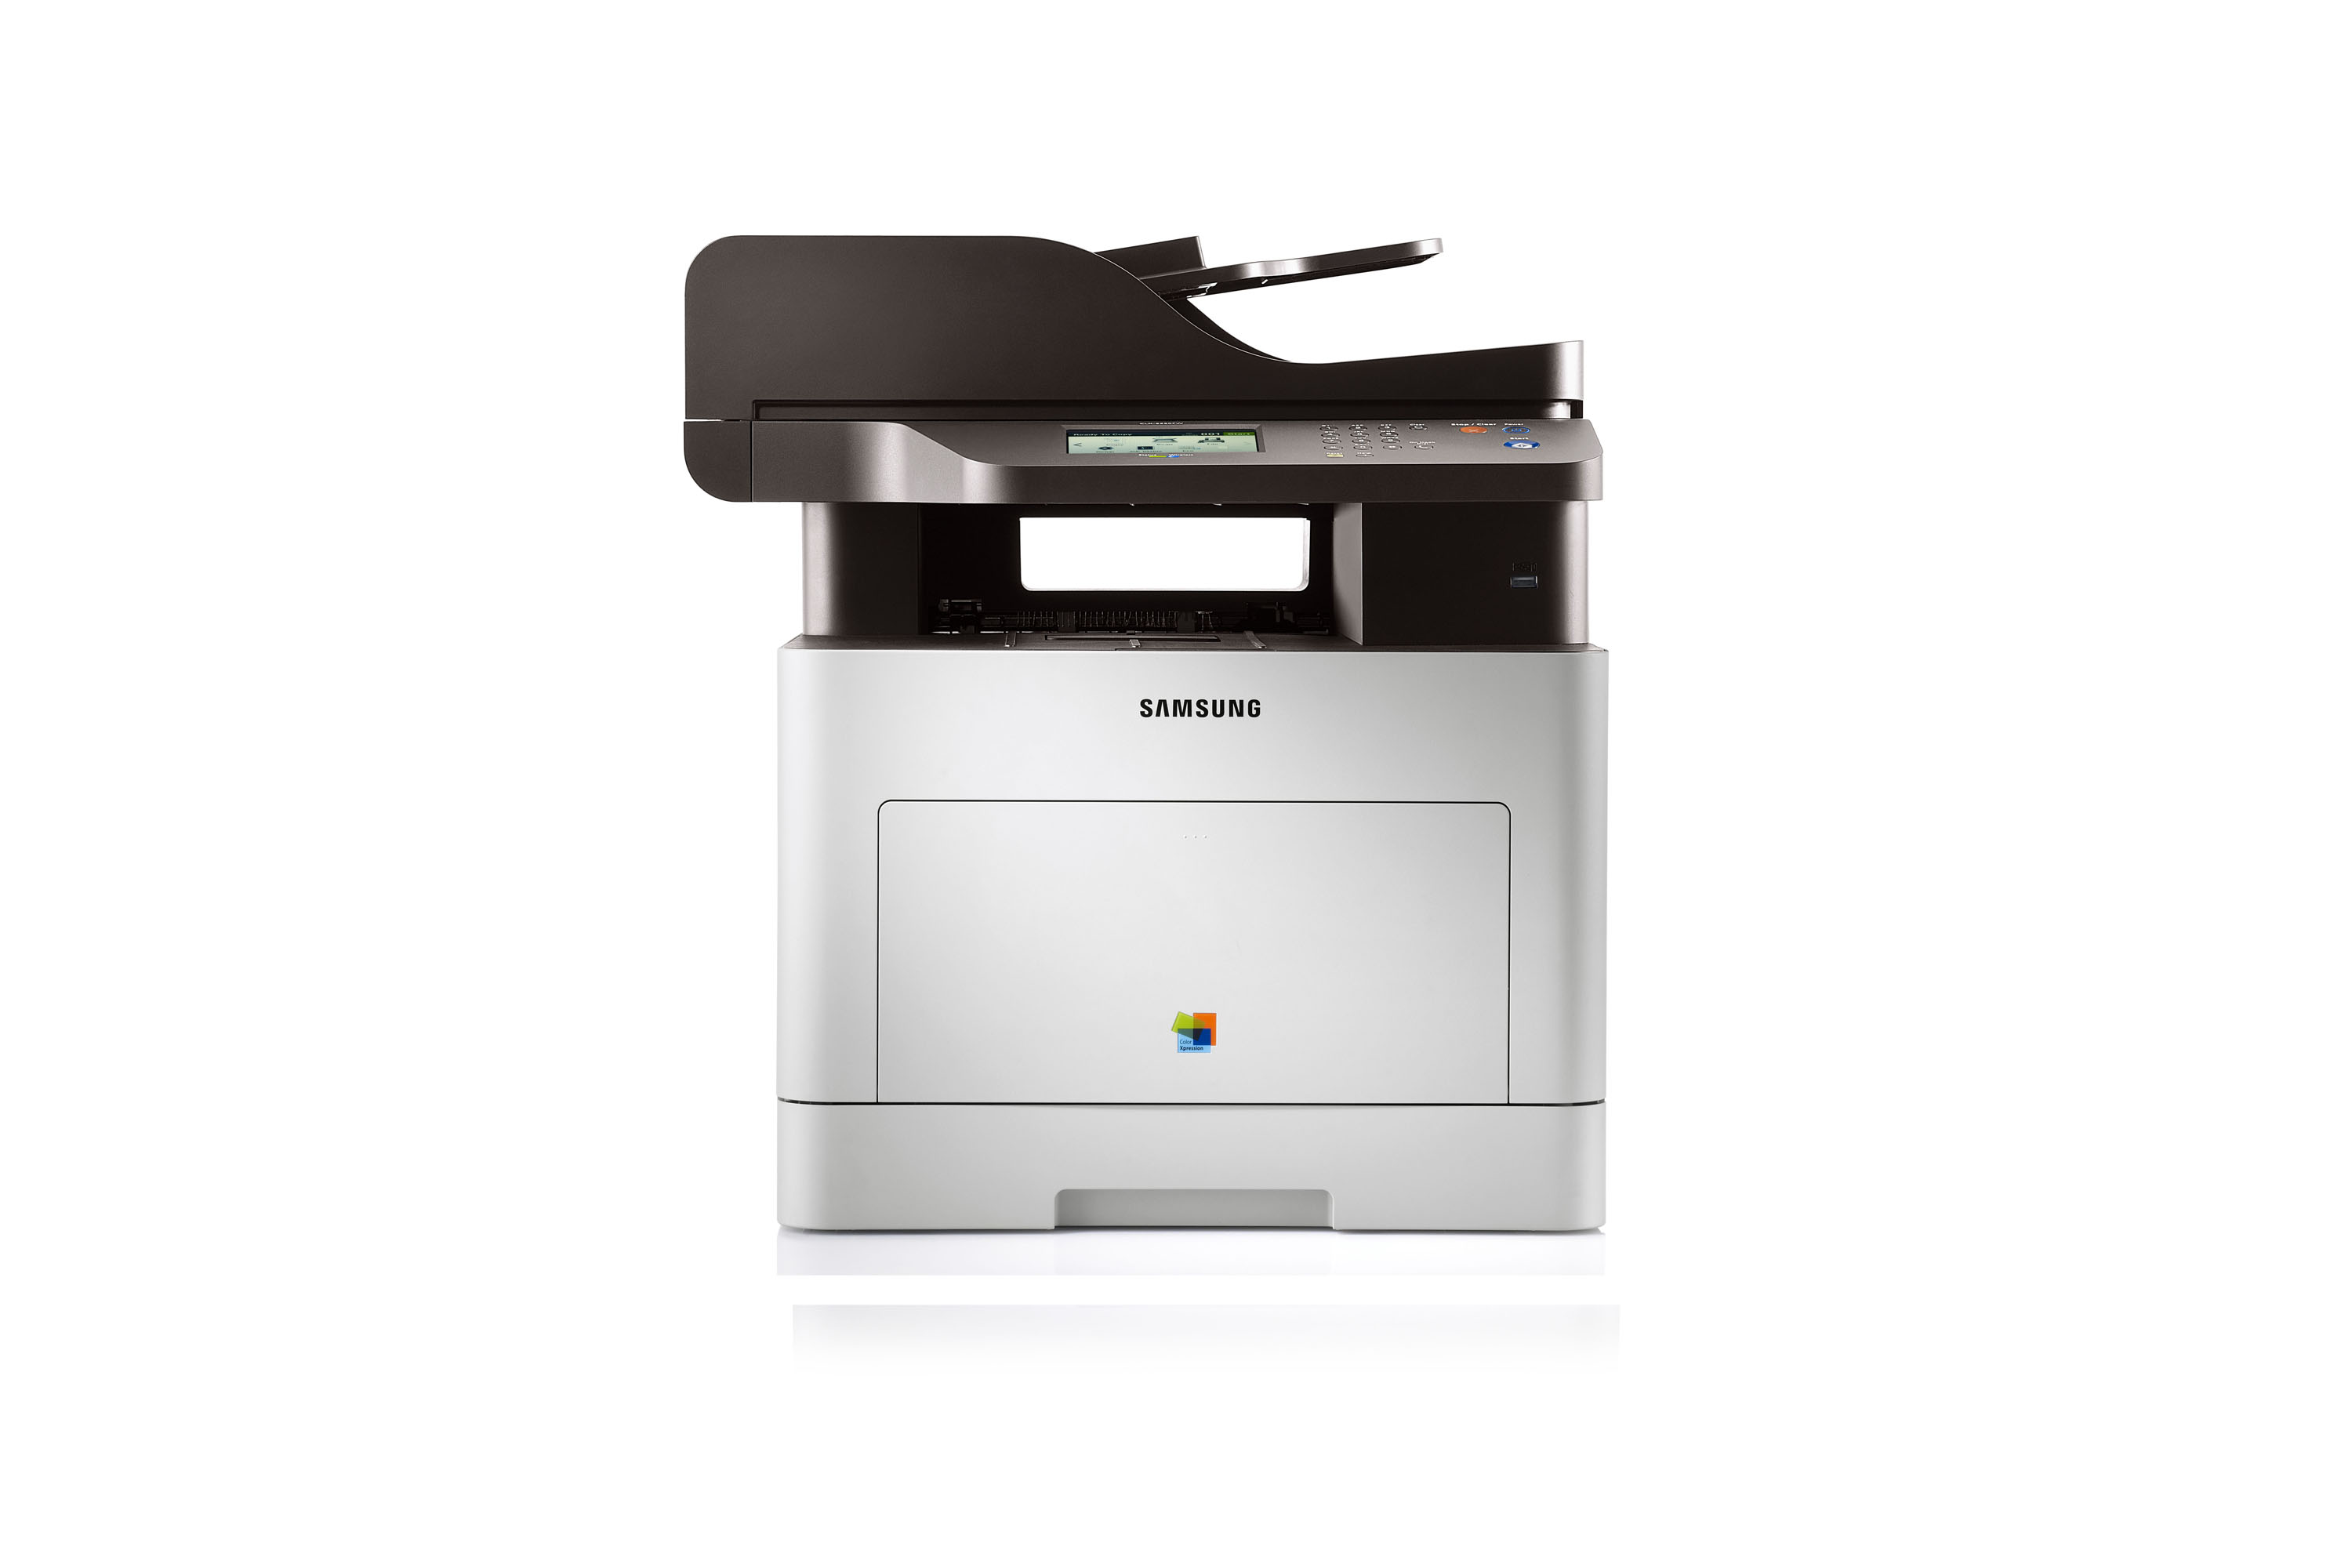 Samsung Colour Multifunction Printer CLX-6260FW / CLX-6260ND with £50 cashback